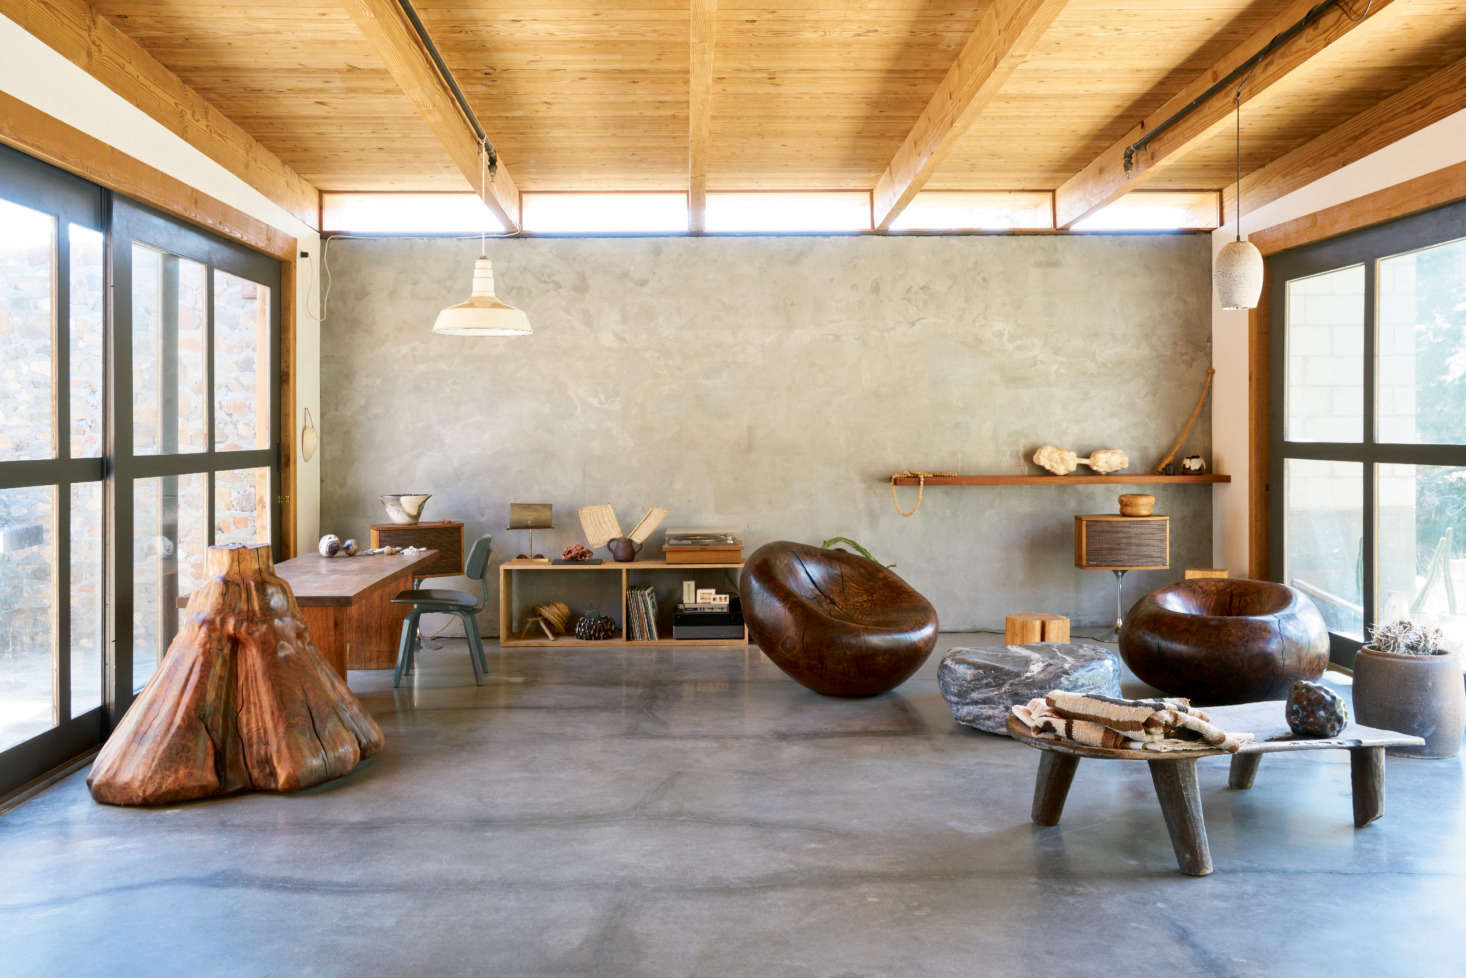 On Display In Almau0027s Living Space: Sculptural Carved Works, Some That  Function As Furniture